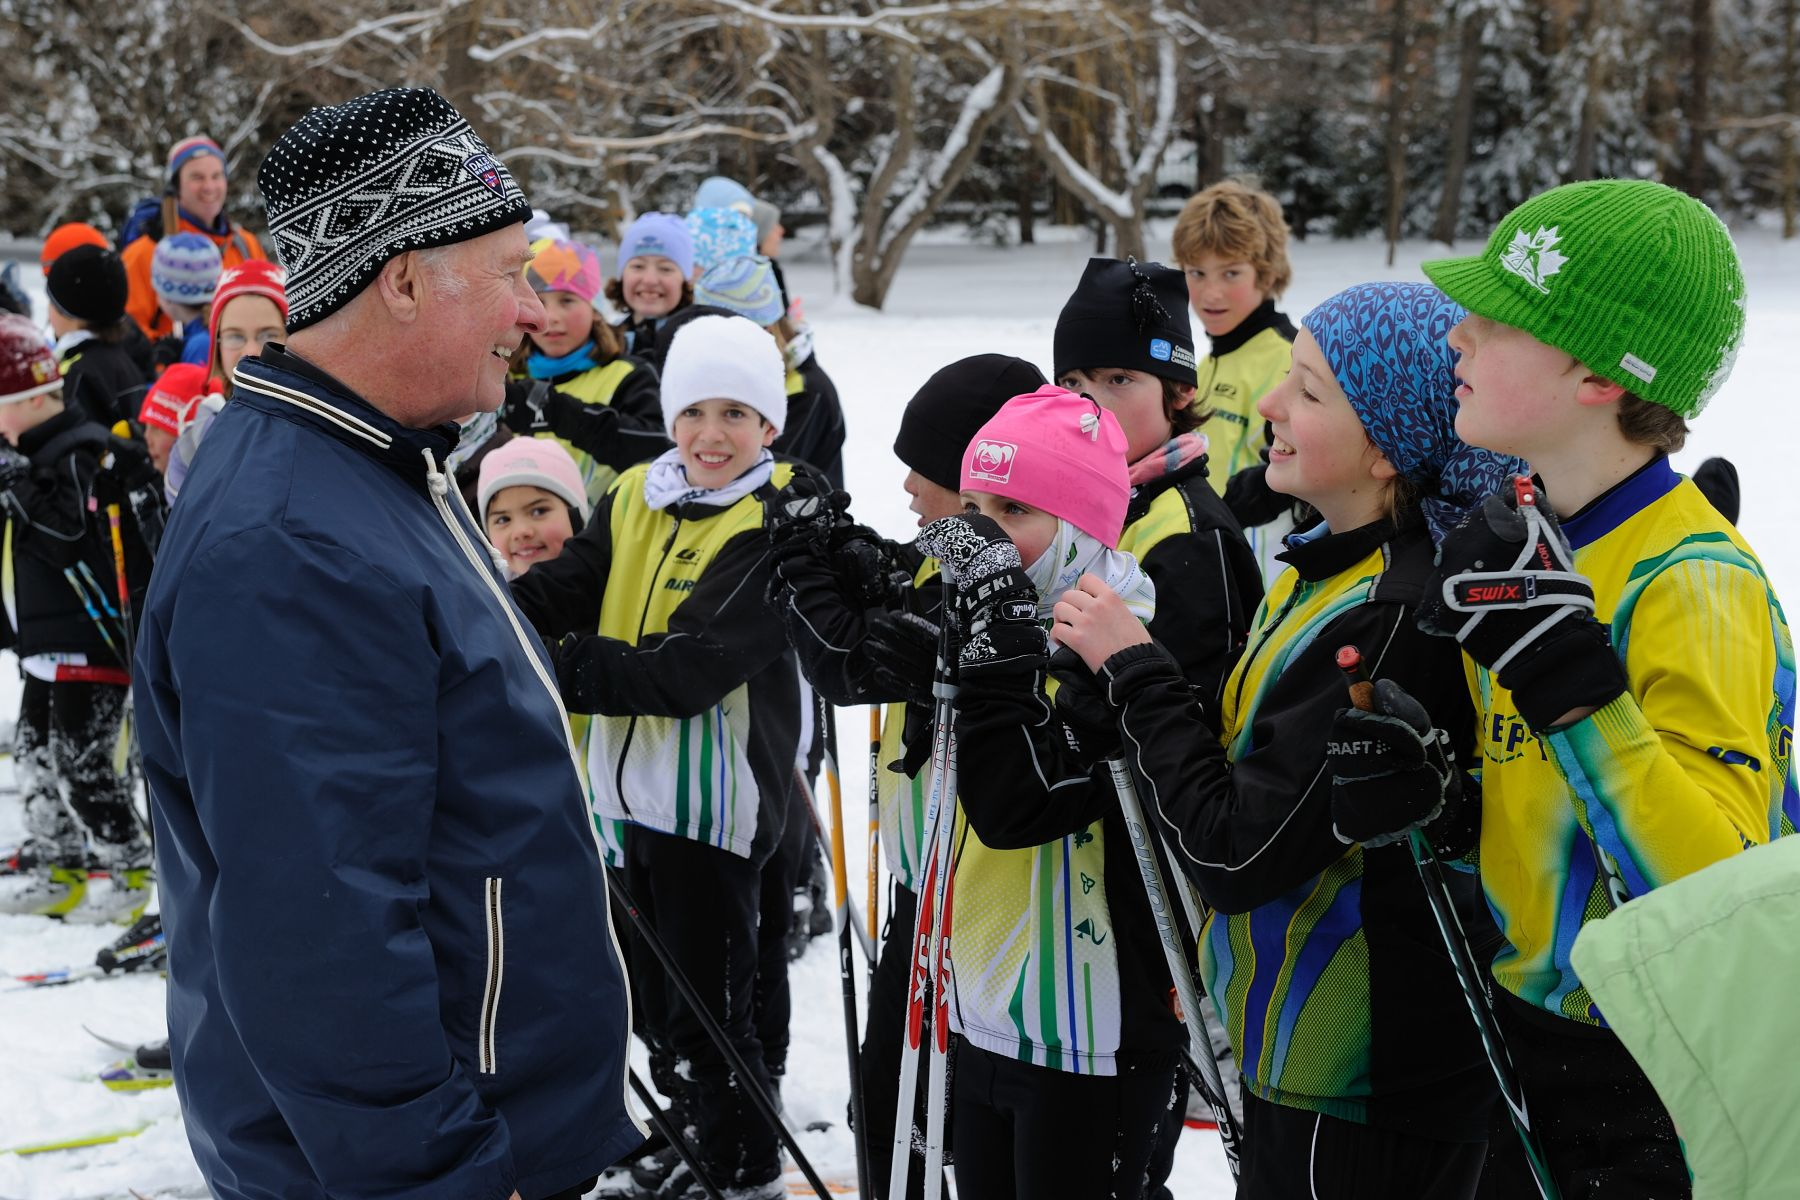 The Governor General took the time to speak to young skiers from the Nakkertok Cross-Country Ski Club who provided cross-country skiing demonstrations to visitors.